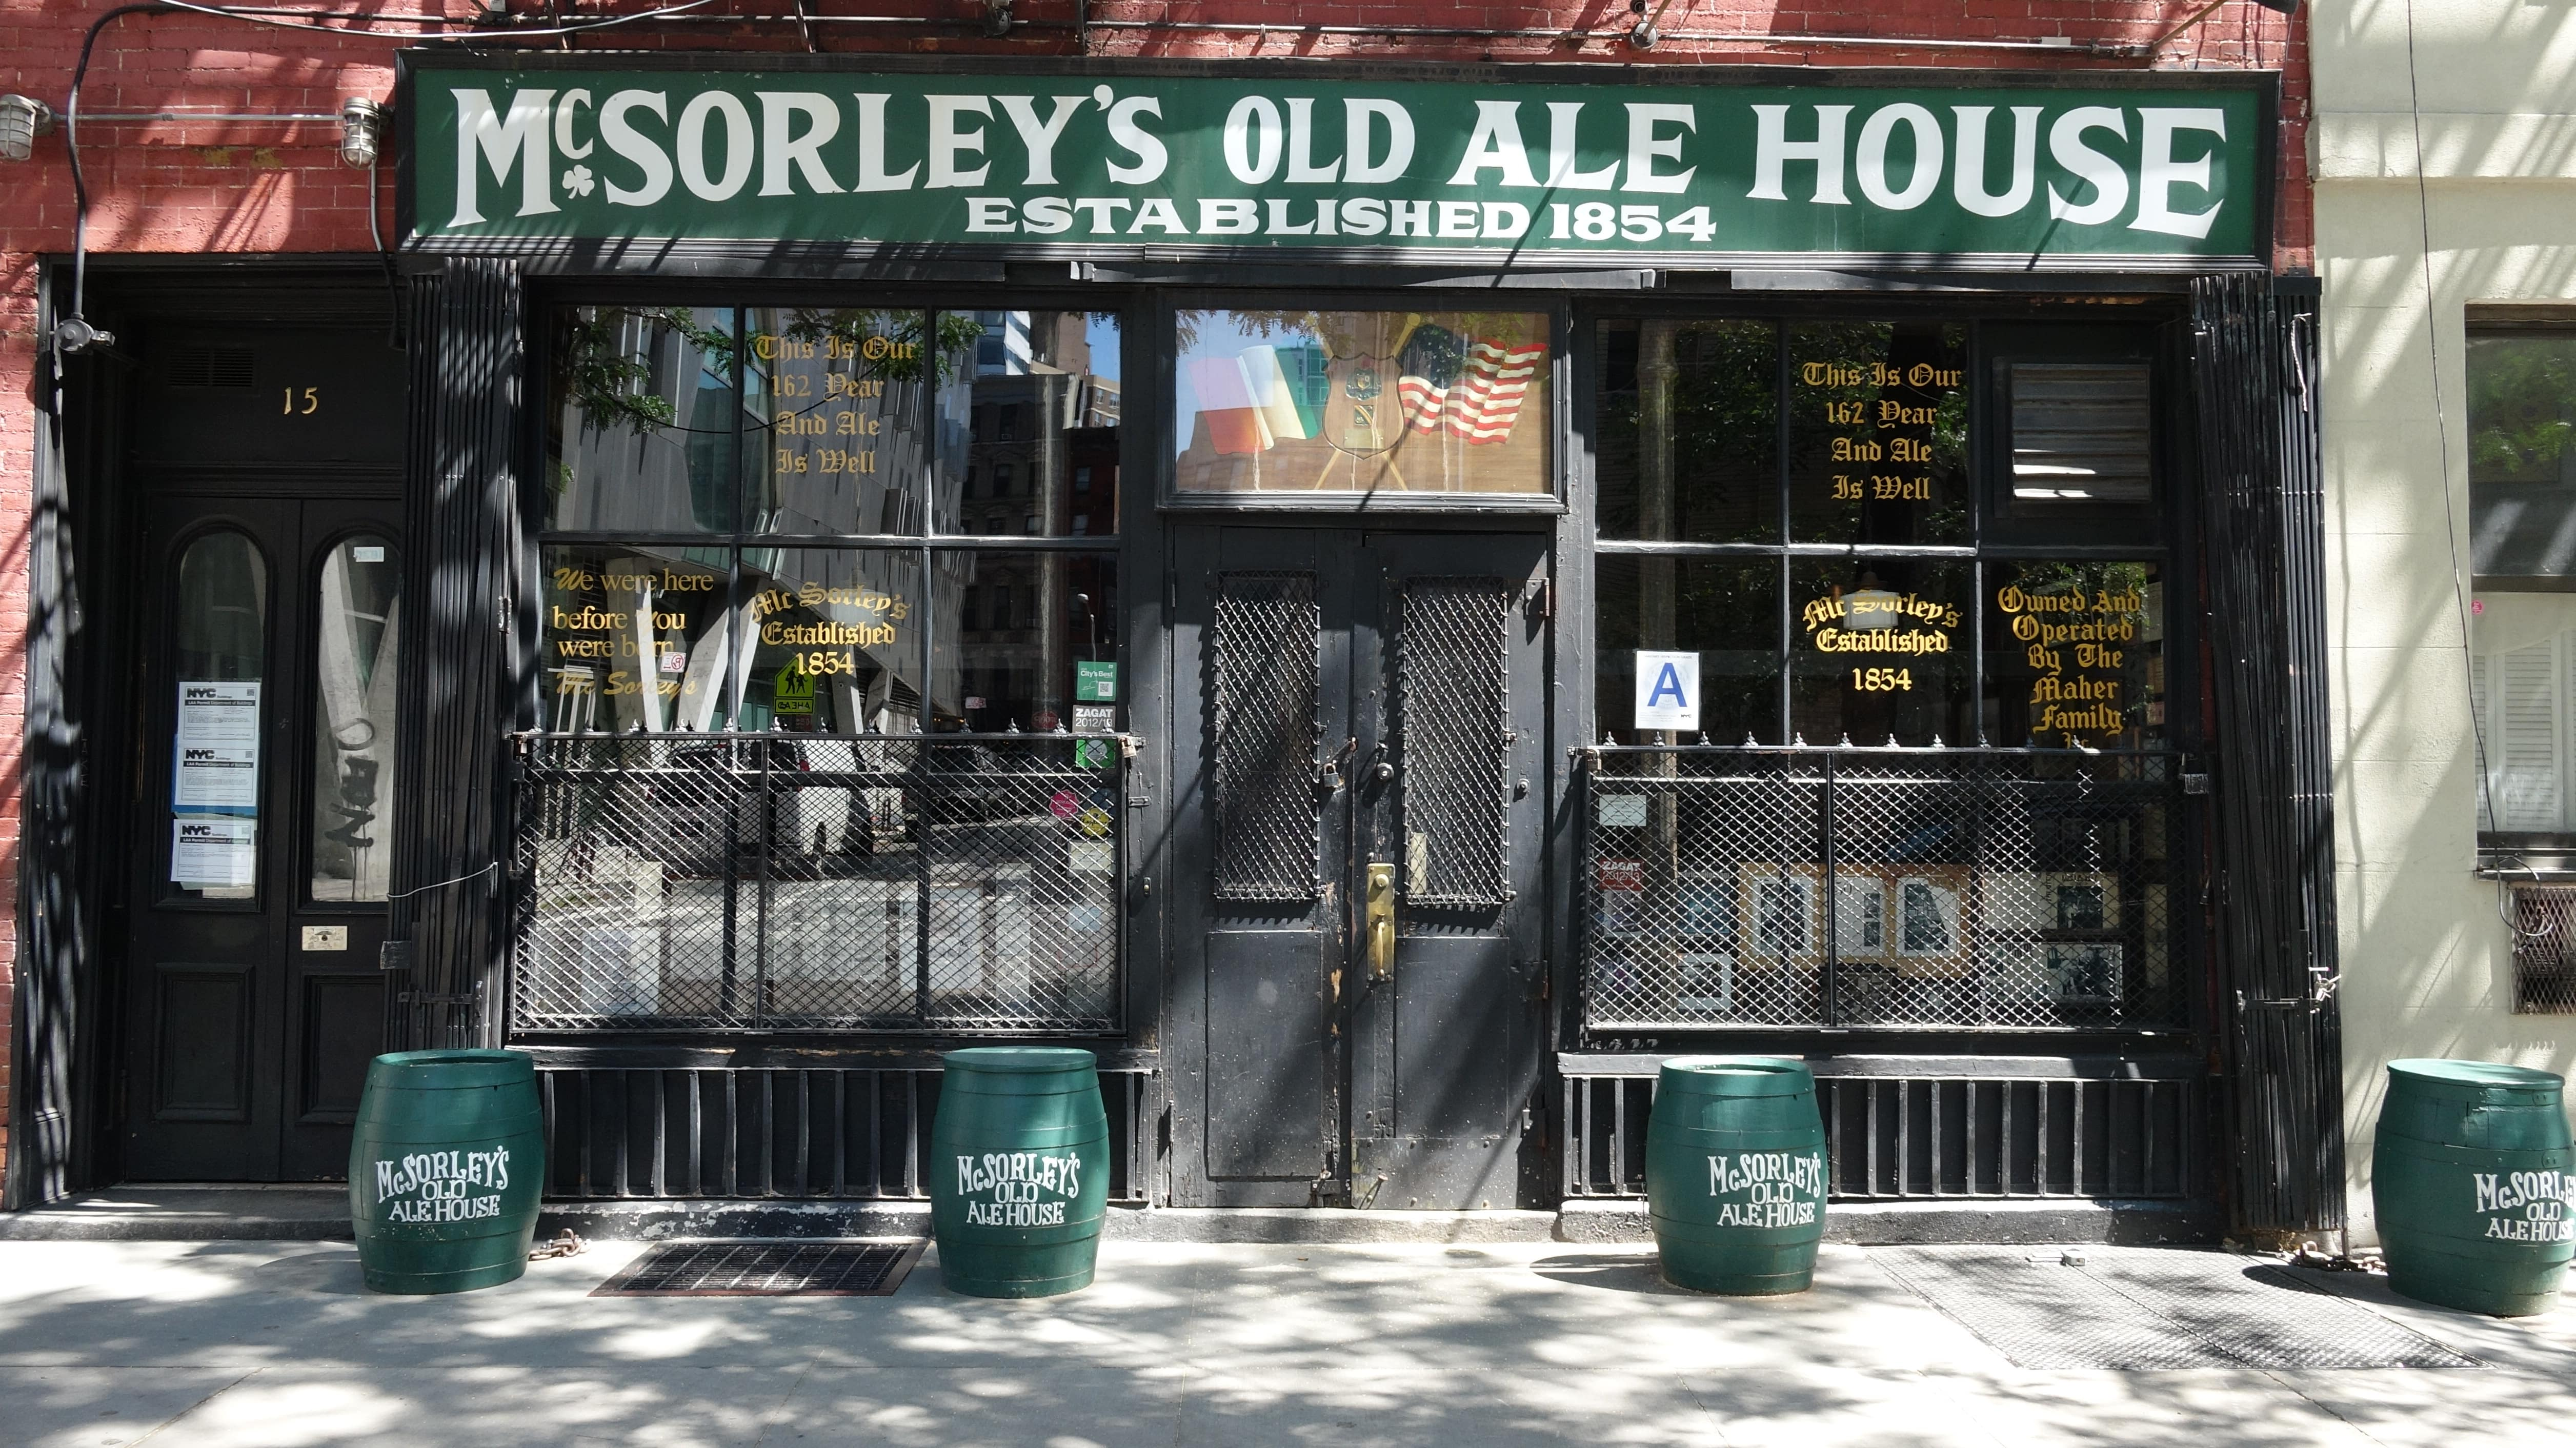 For a fun thing to do in NYC, grab a beer at McSorley's